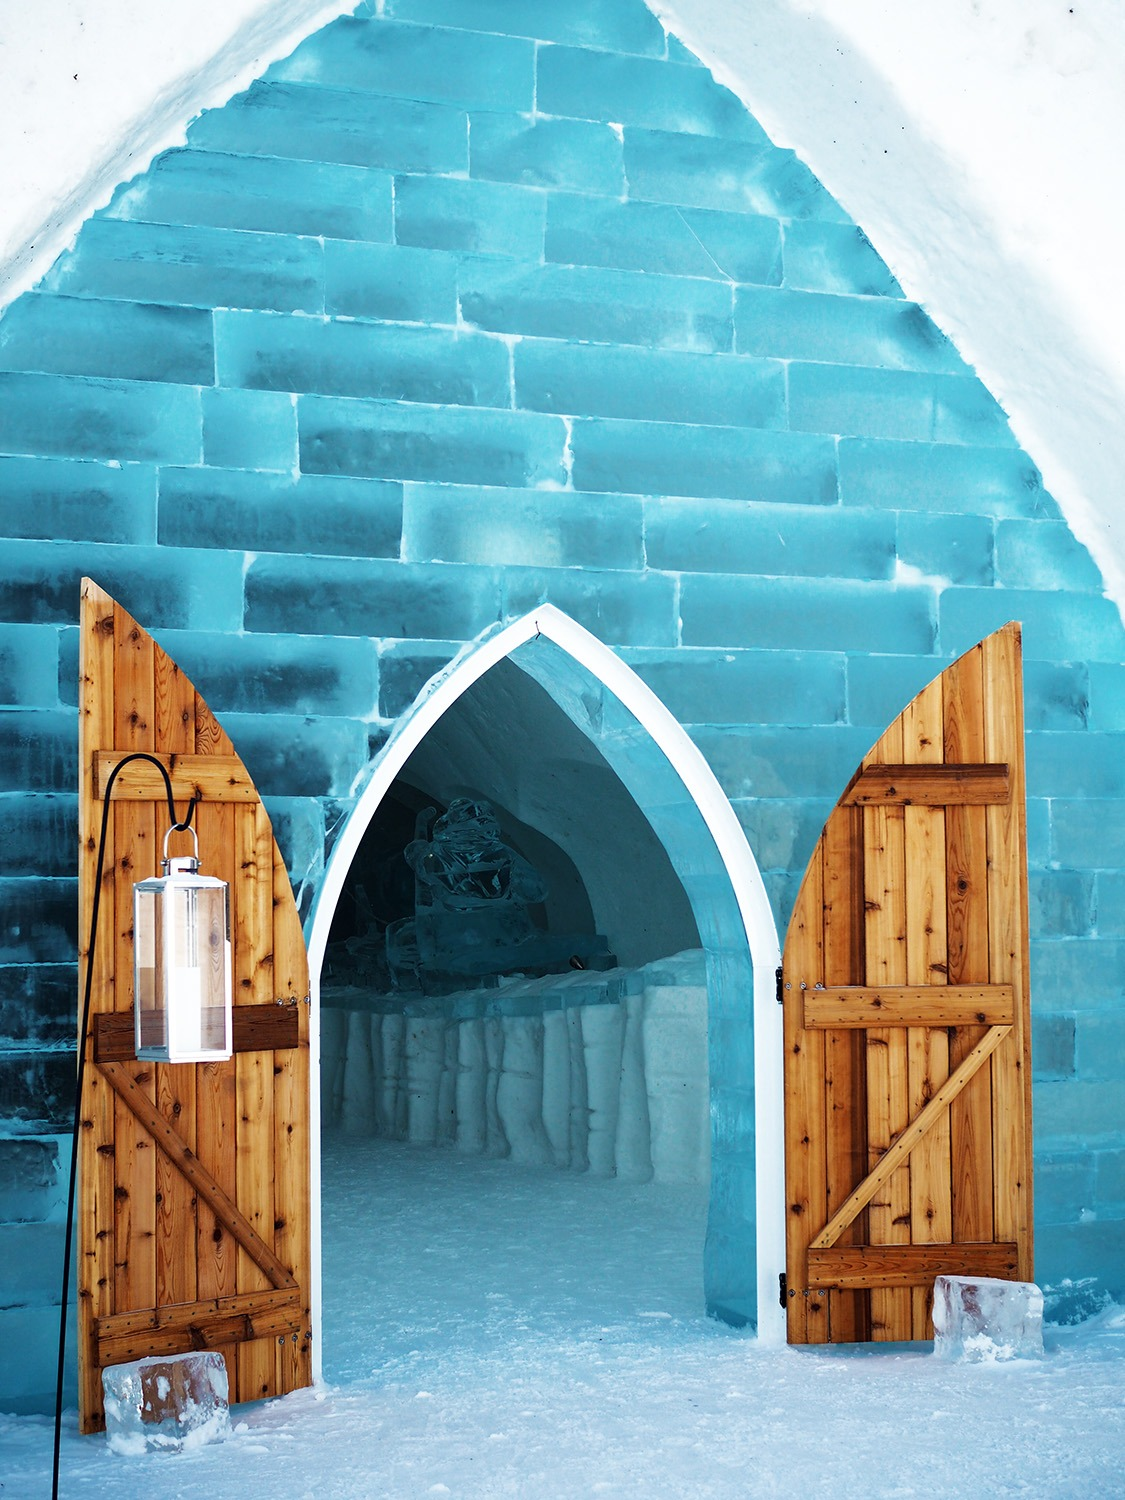 Hôtel de Glace in Quebec City - Hôtel de Glace - Things to Do in Quebec City